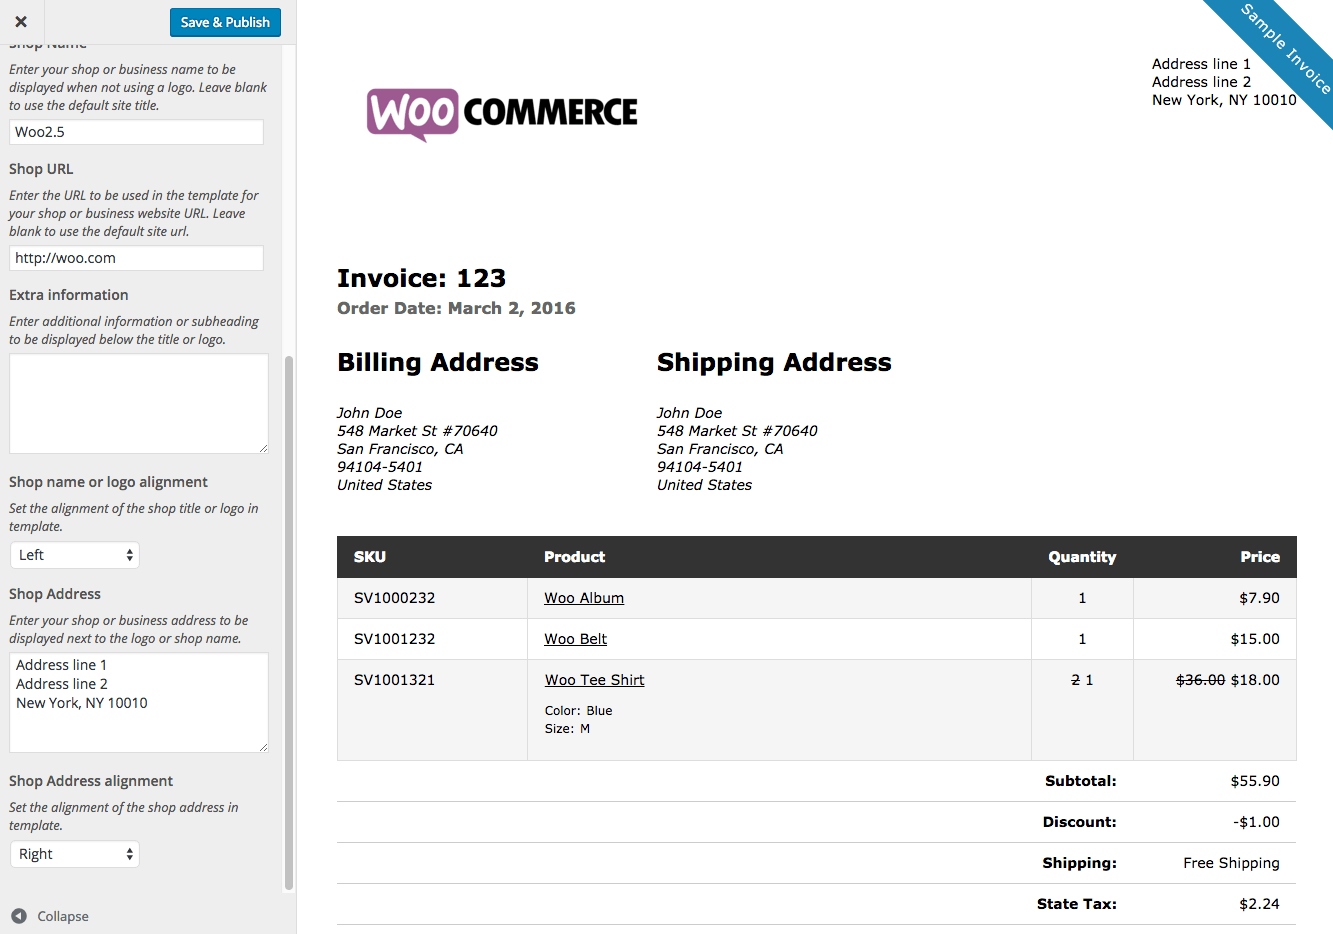 Helpingtohealus  Remarkable Woocommerce Print Invoices Amp Packing Lists  Woocommerce Docs With Goodlooking Woocommerce Print Invoices  Packing Lists Customizer With Breathtaking Acknowledgement Of Receipt Of Letter Also Receipts Paper In Addition Free Sales Receipt Form And Prime Rib Receipt As Well As Best Receipt App Iphone Additionally How To Print Receipt From Docswoocommercecom With Helpingtohealus  Goodlooking Woocommerce Print Invoices Amp Packing Lists  Woocommerce Docs With Breathtaking Woocommerce Print Invoices  Packing Lists Customizer And Remarkable Acknowledgement Of Receipt Of Letter Also Receipts Paper In Addition Free Sales Receipt Form From Docswoocommercecom